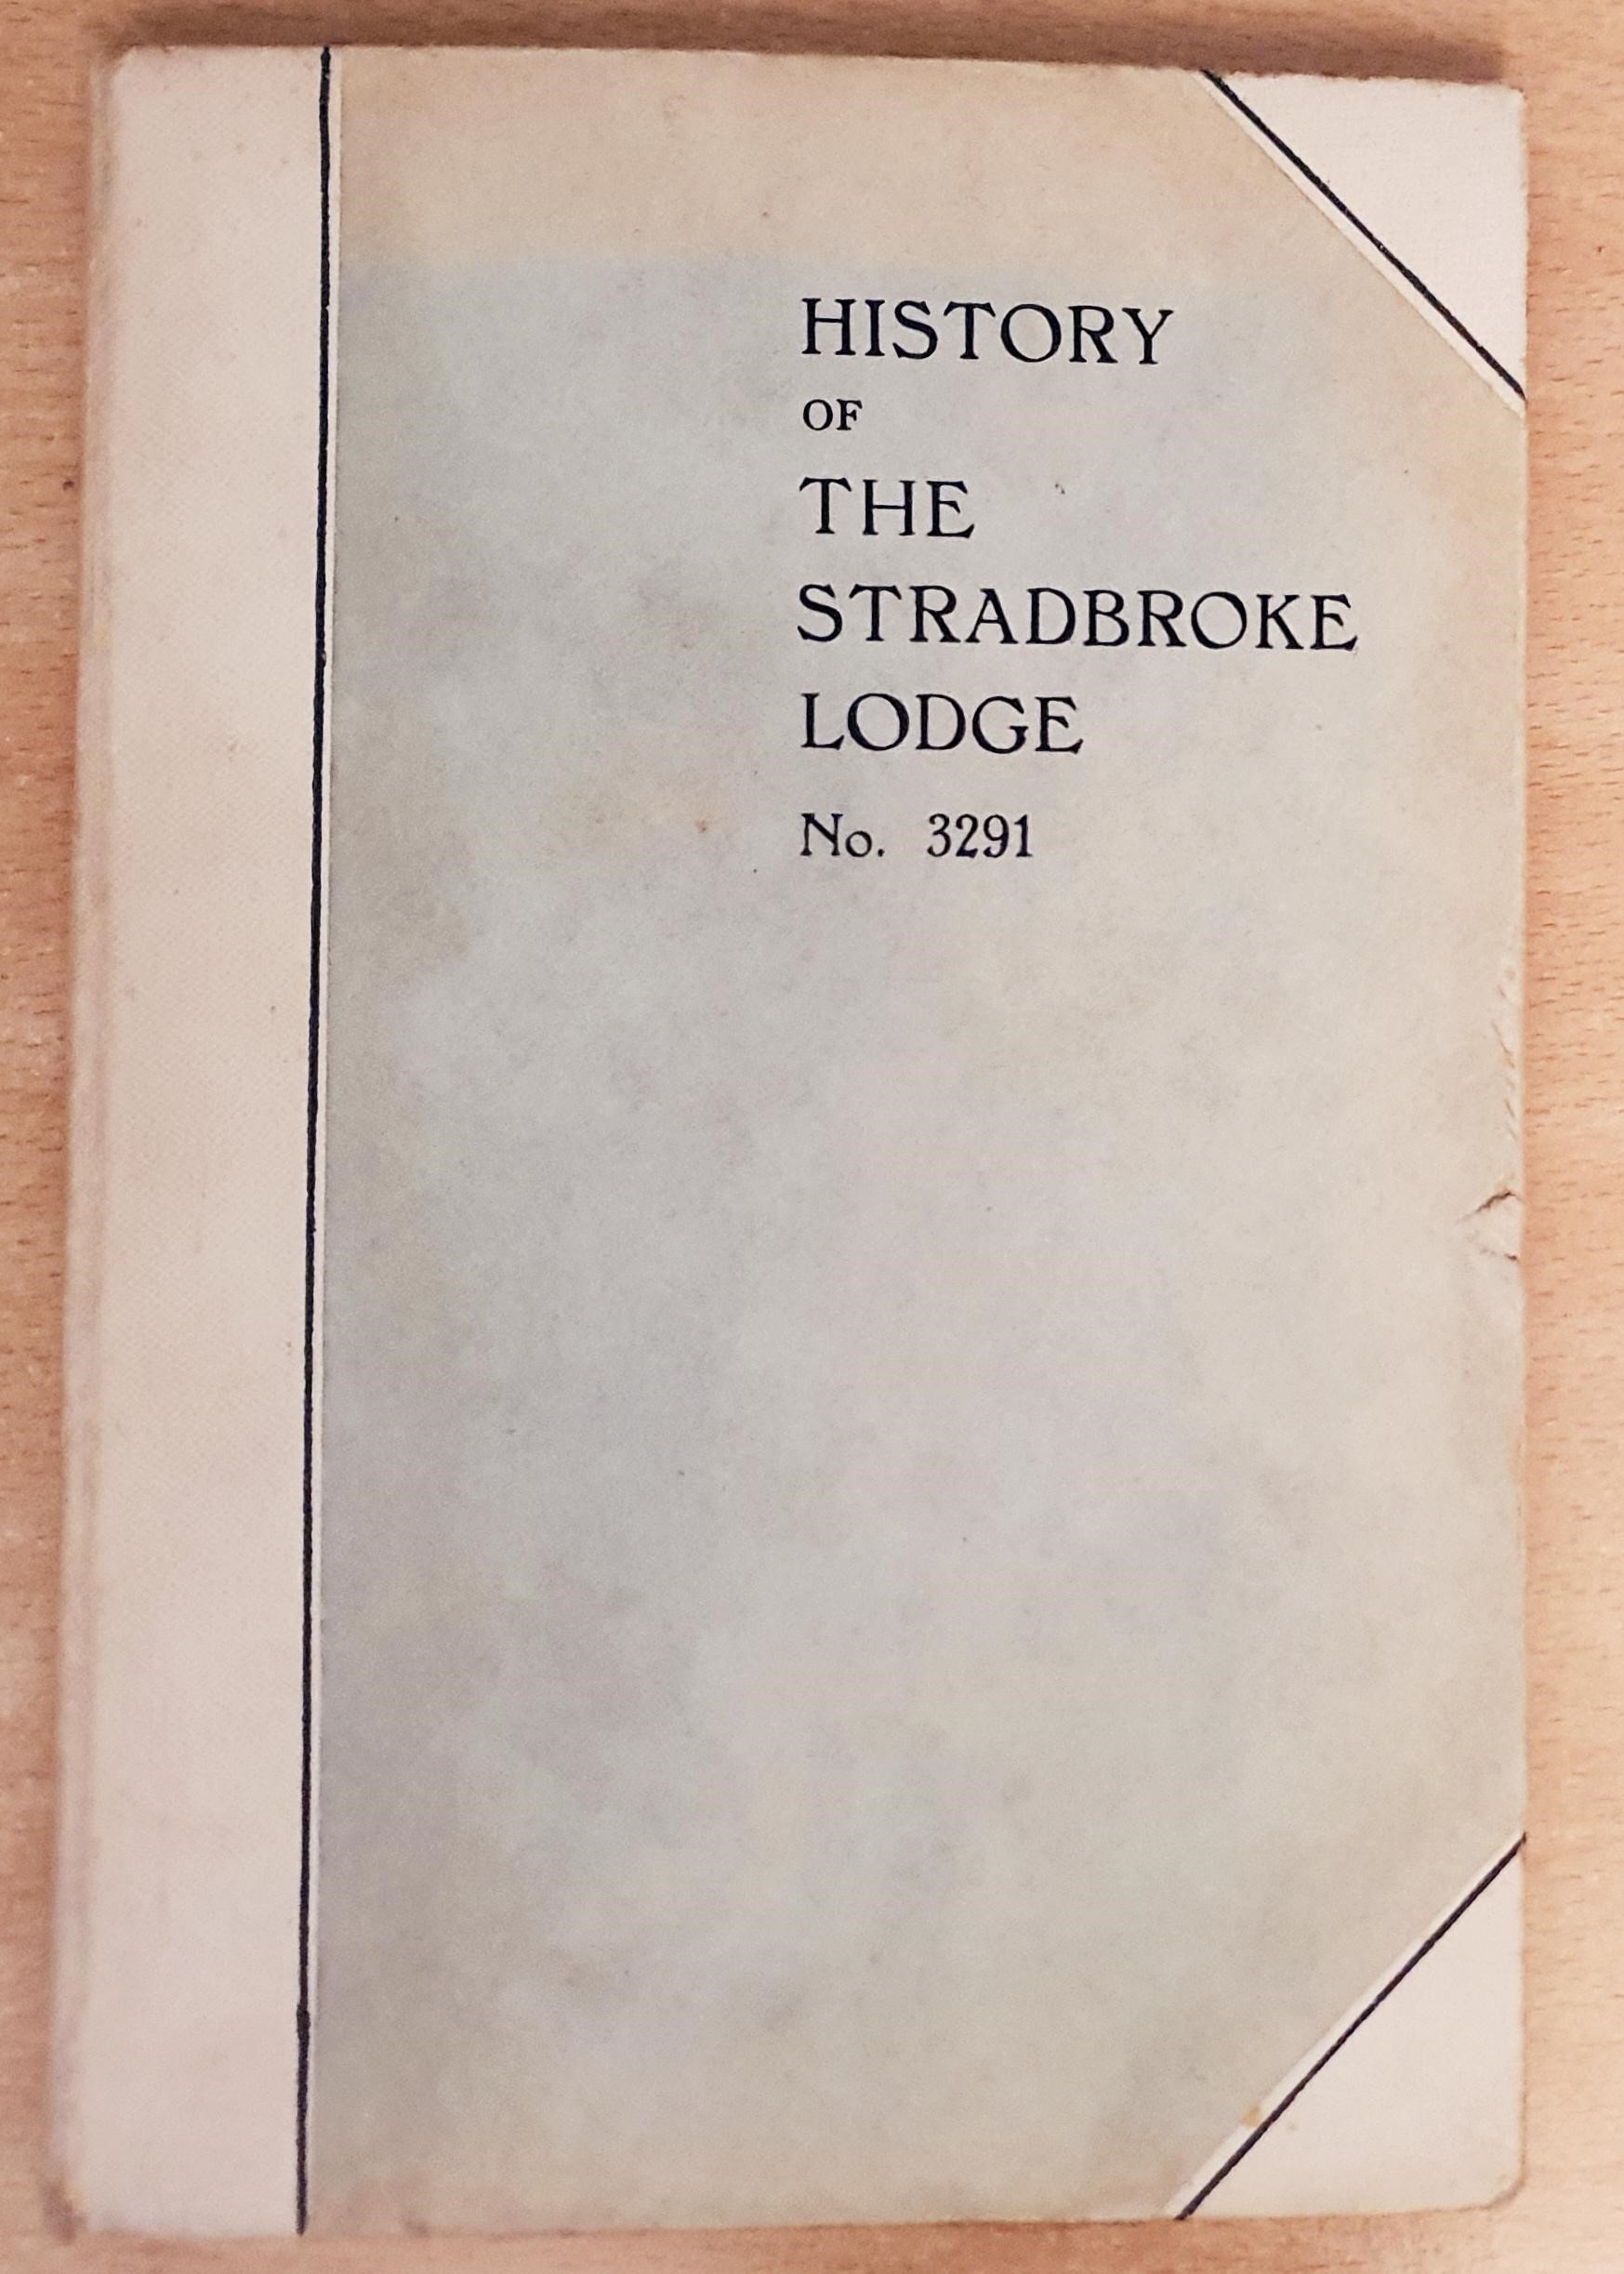 Image for A History of The Stradbroke Lodge No. 3291 From April 8th, 1908 to march 16th, 1932. Compiled by W. Bro. R. E. Storm, P.M., P.P.G.R. To Commemorate the Twenty-Fifth Installation Meeting of The Lodge 20th April, 1932 .